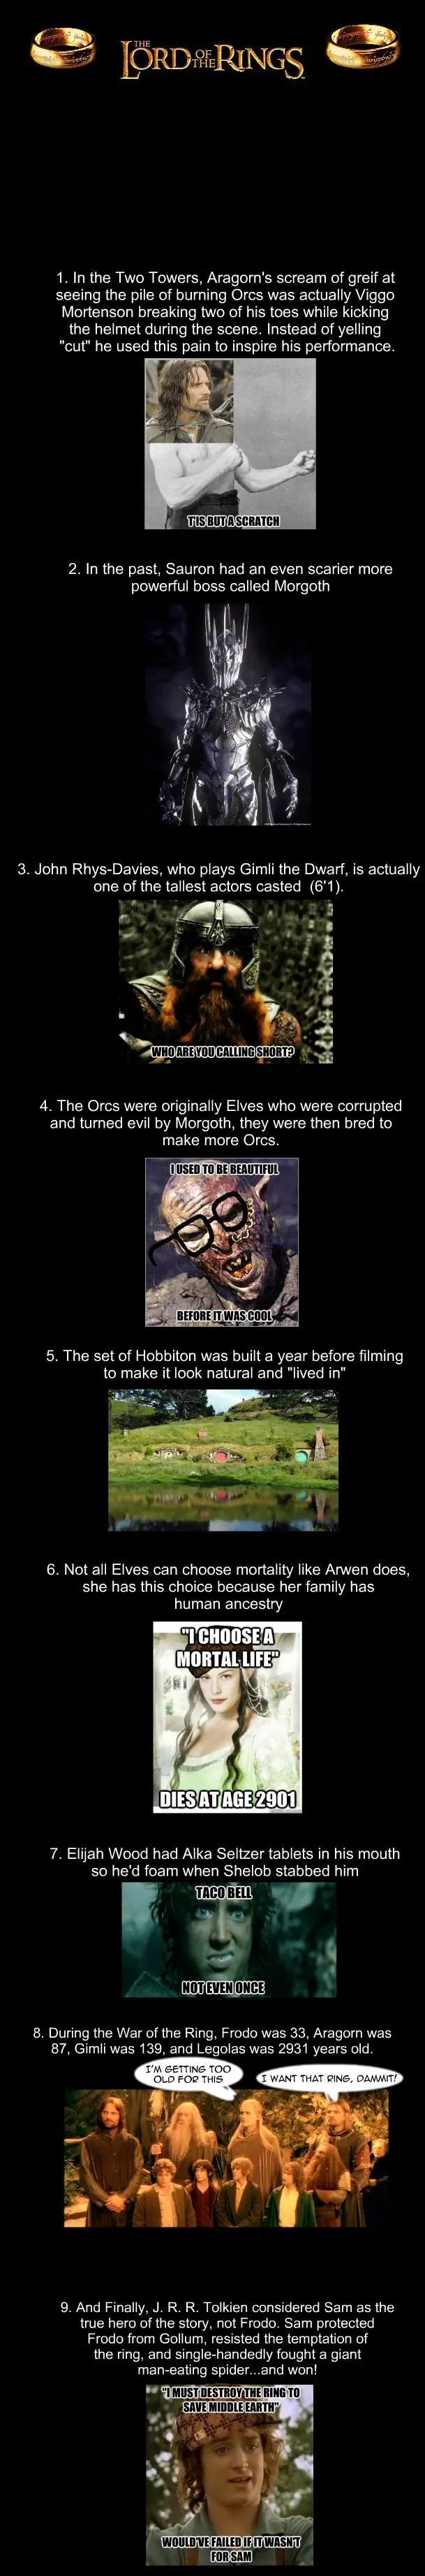 Neat facts about LotR. Glad Tolkien really felt Sam was the hero of the story.